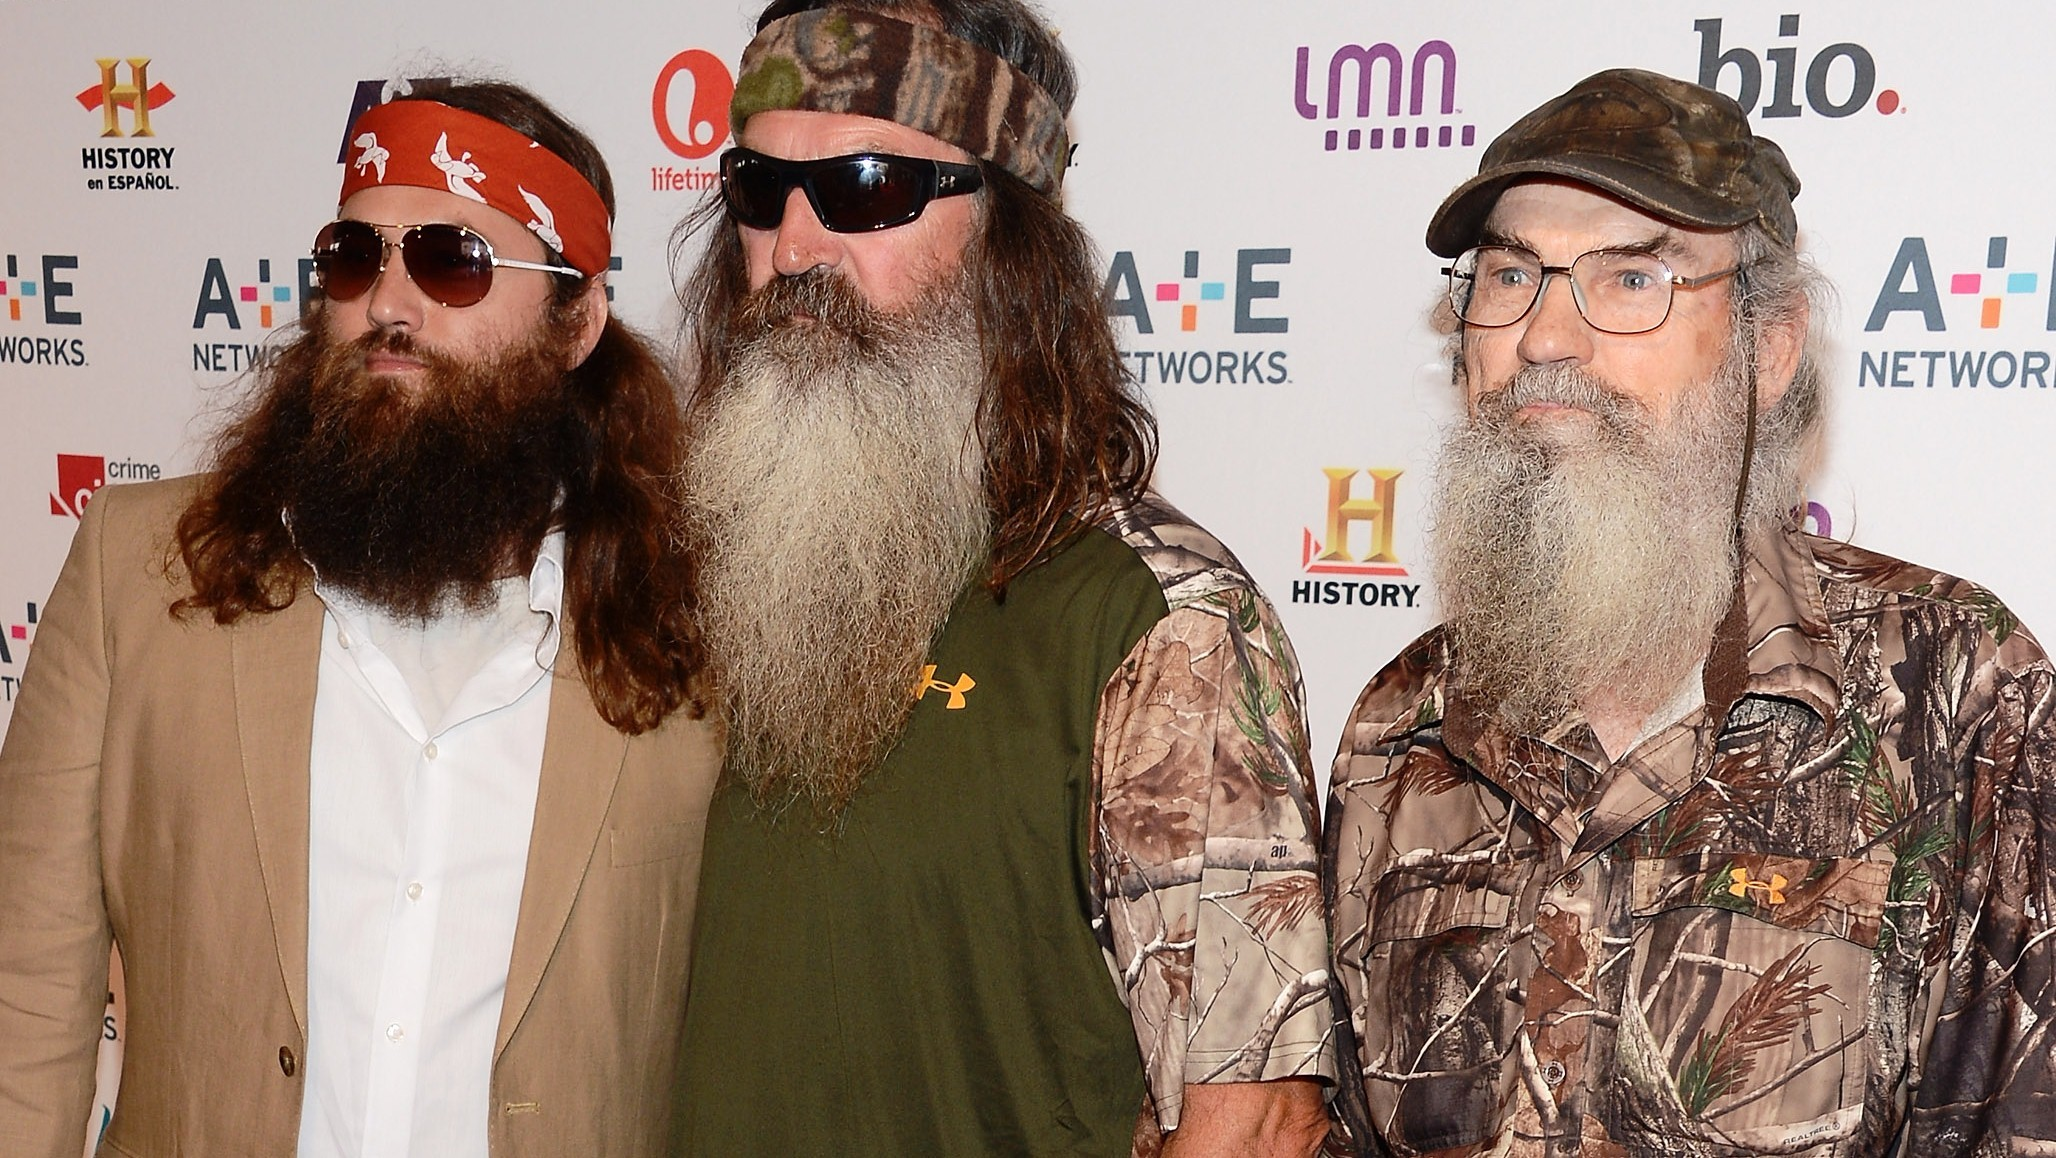 Res: 2056x1158, Duck Dynasty Wallpaper